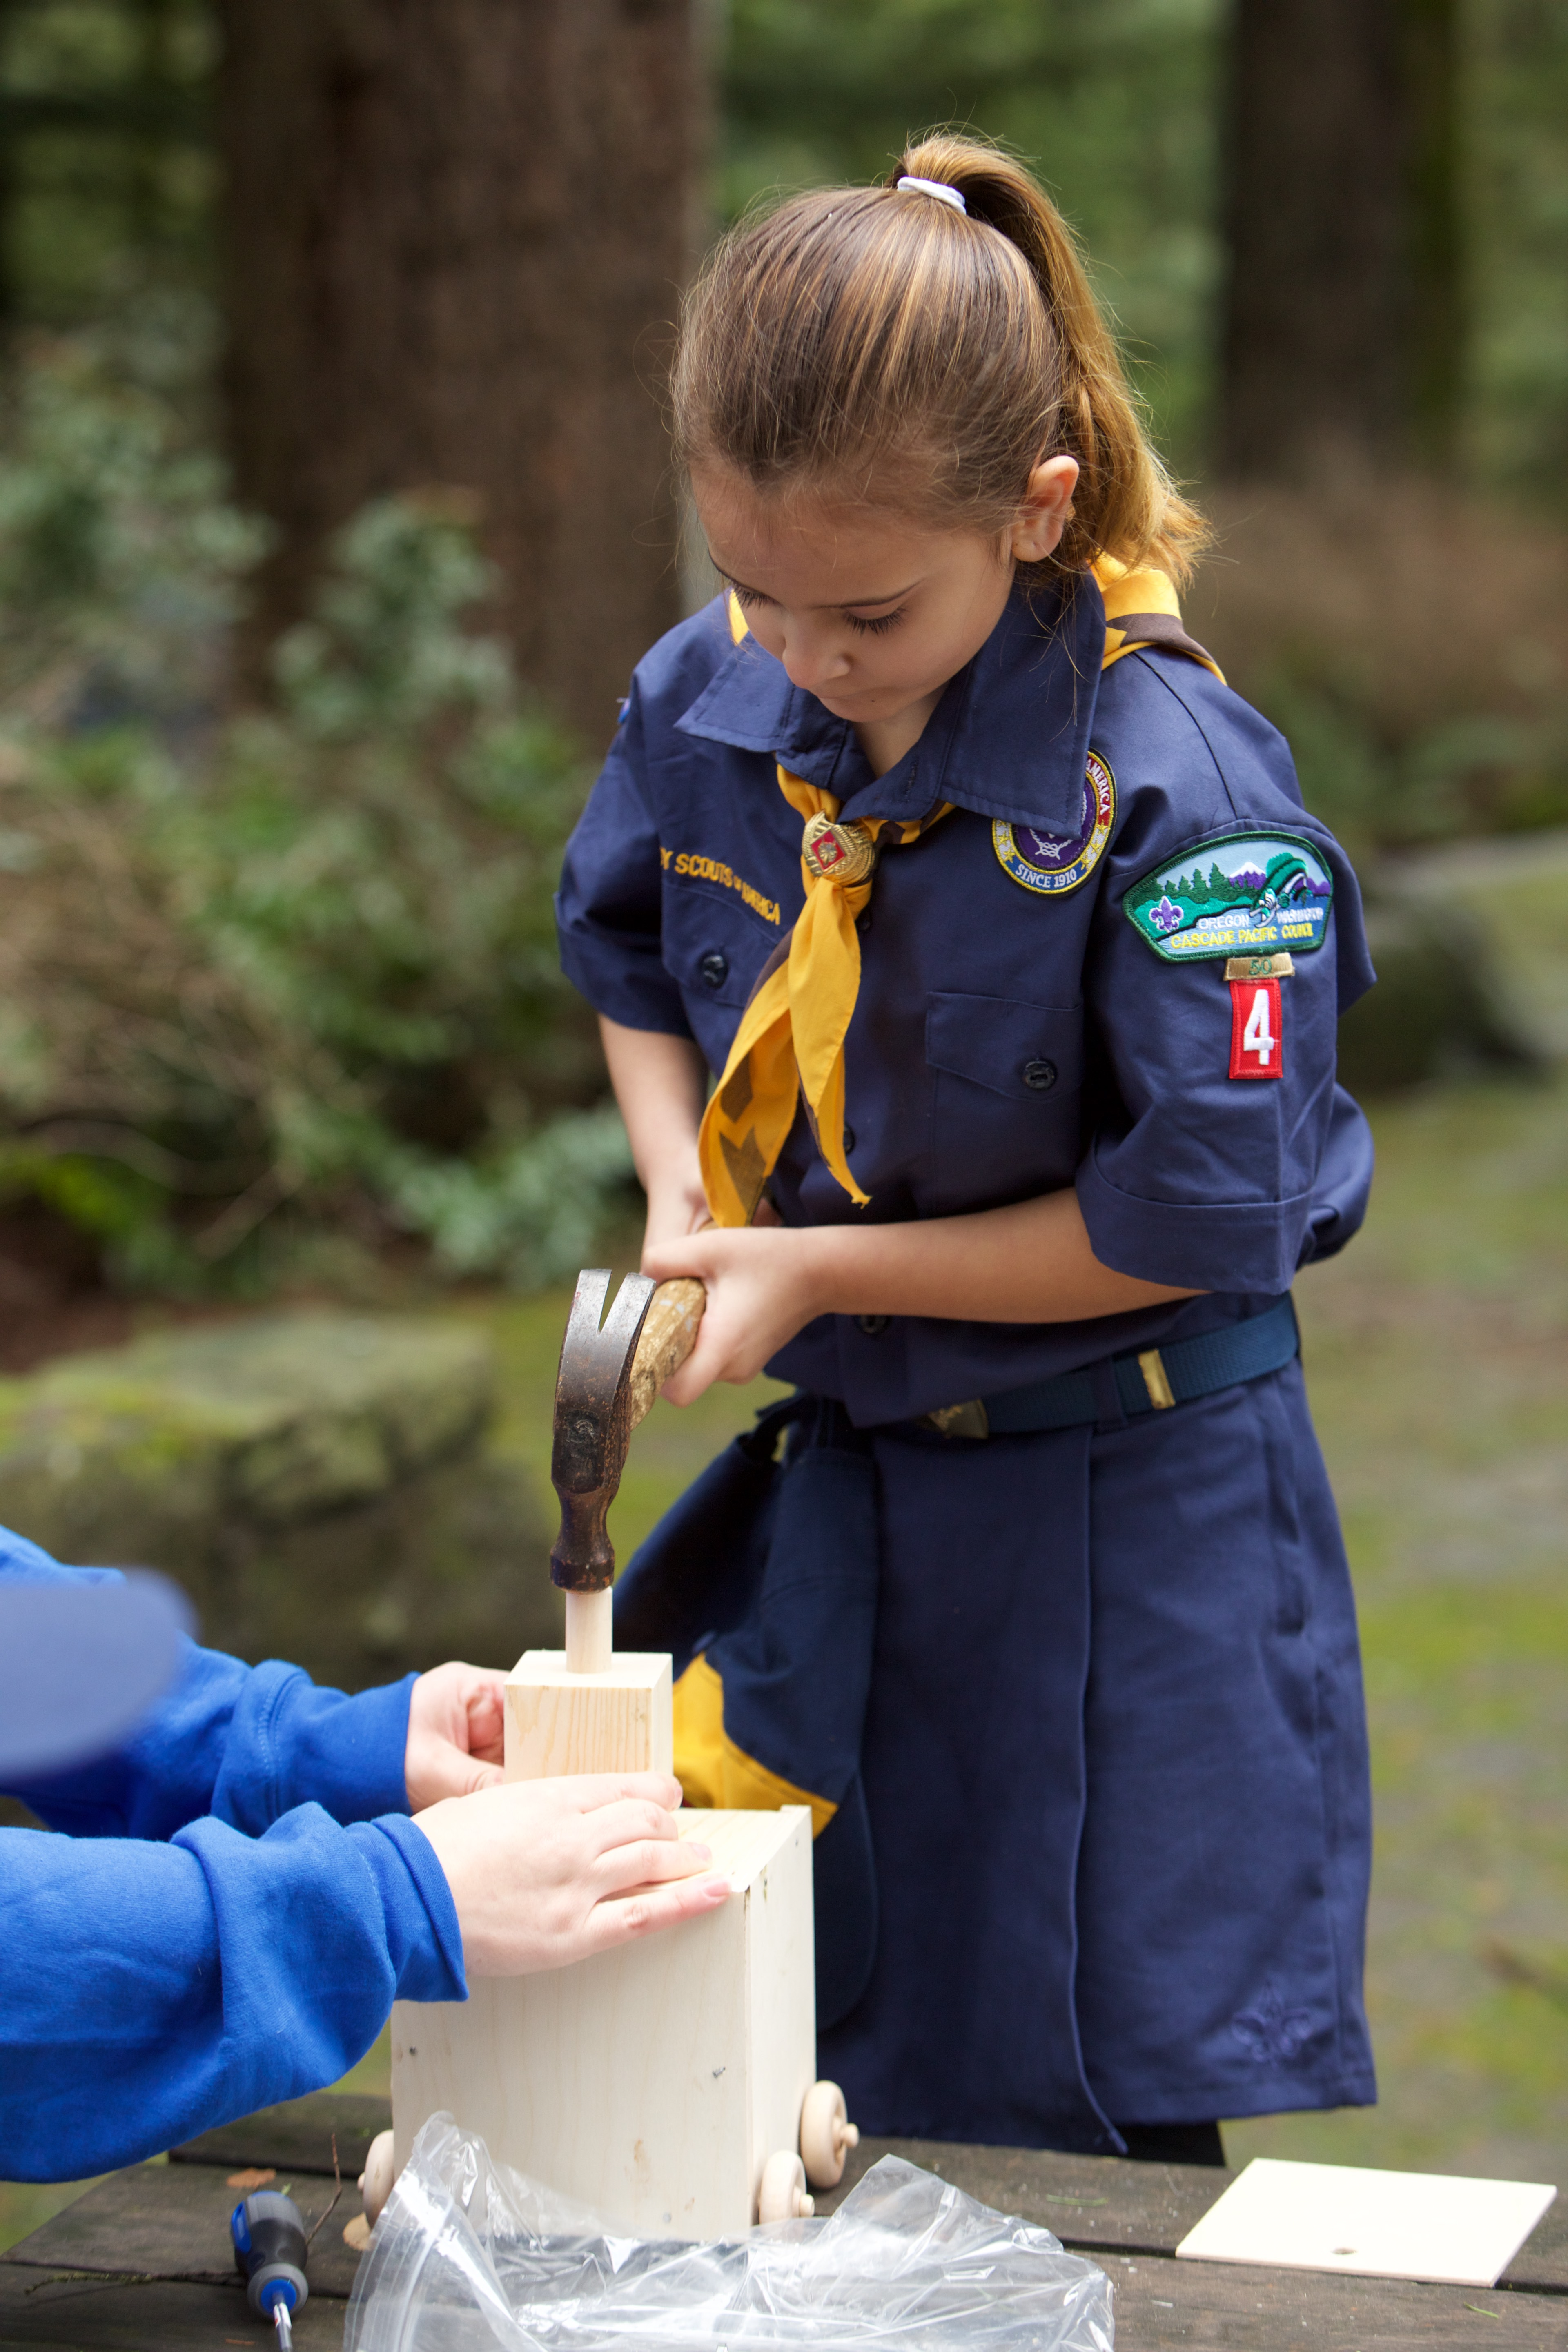 Cub Scout Summer Camp